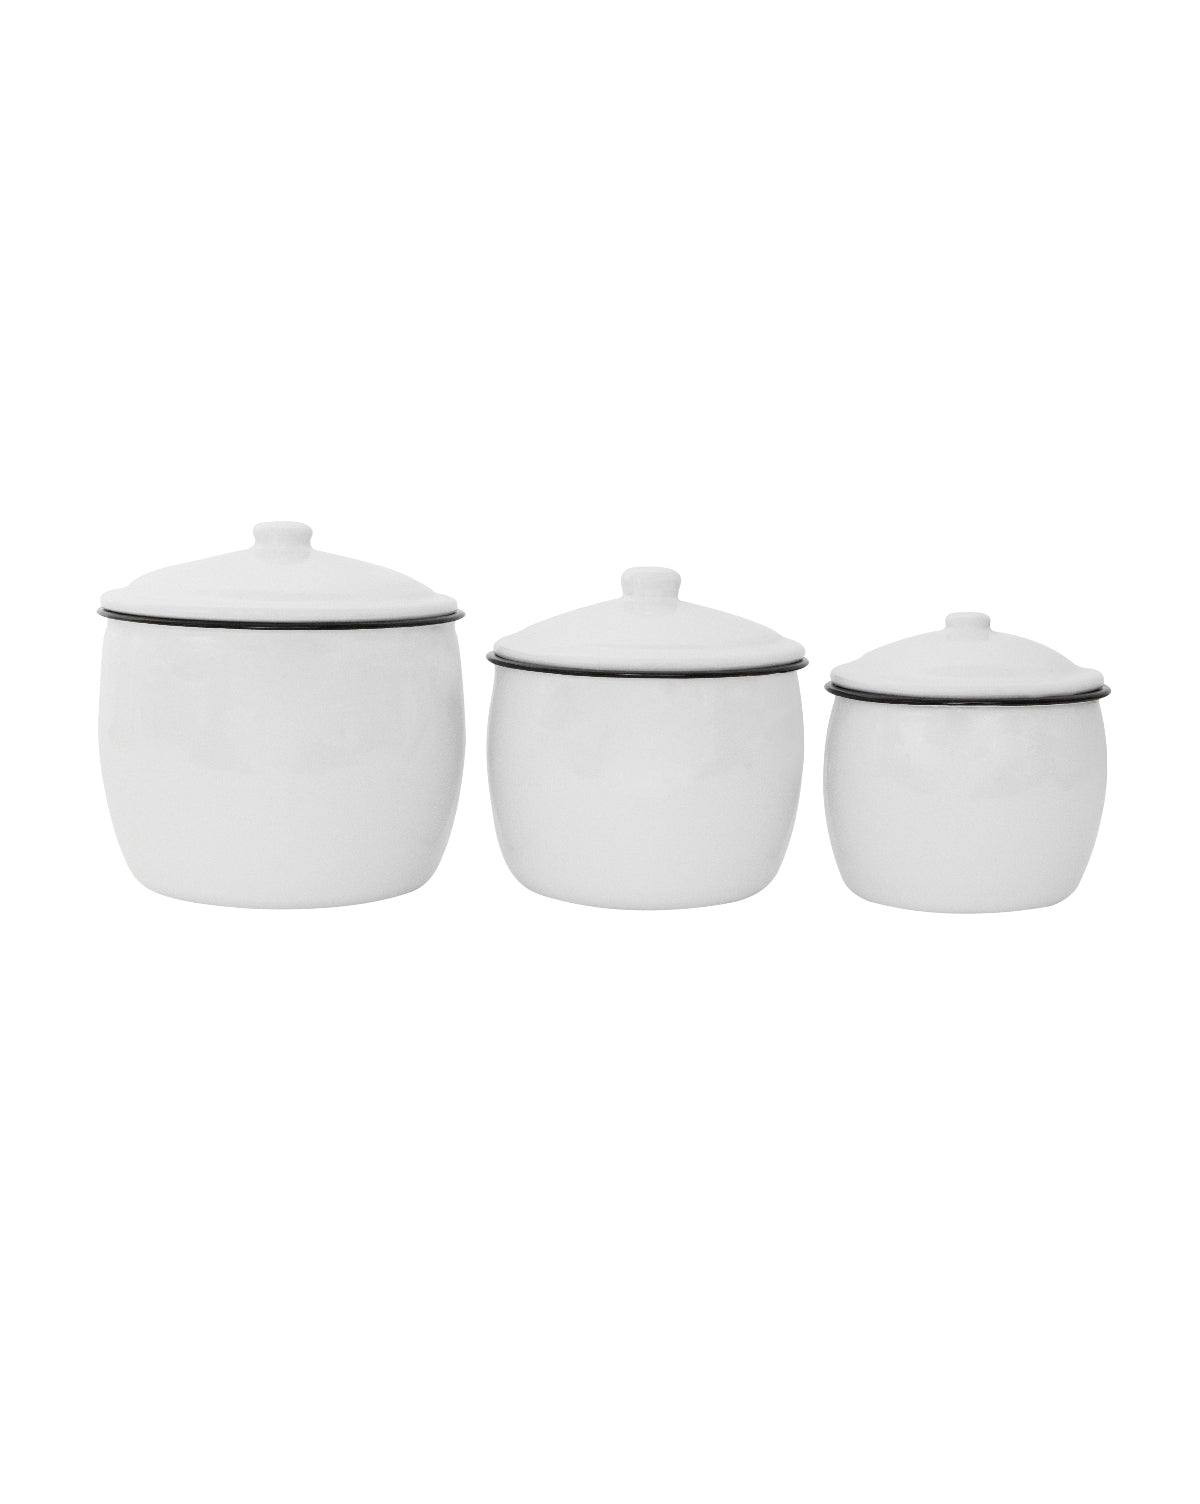 Enameled White Canisters (Set of 3)